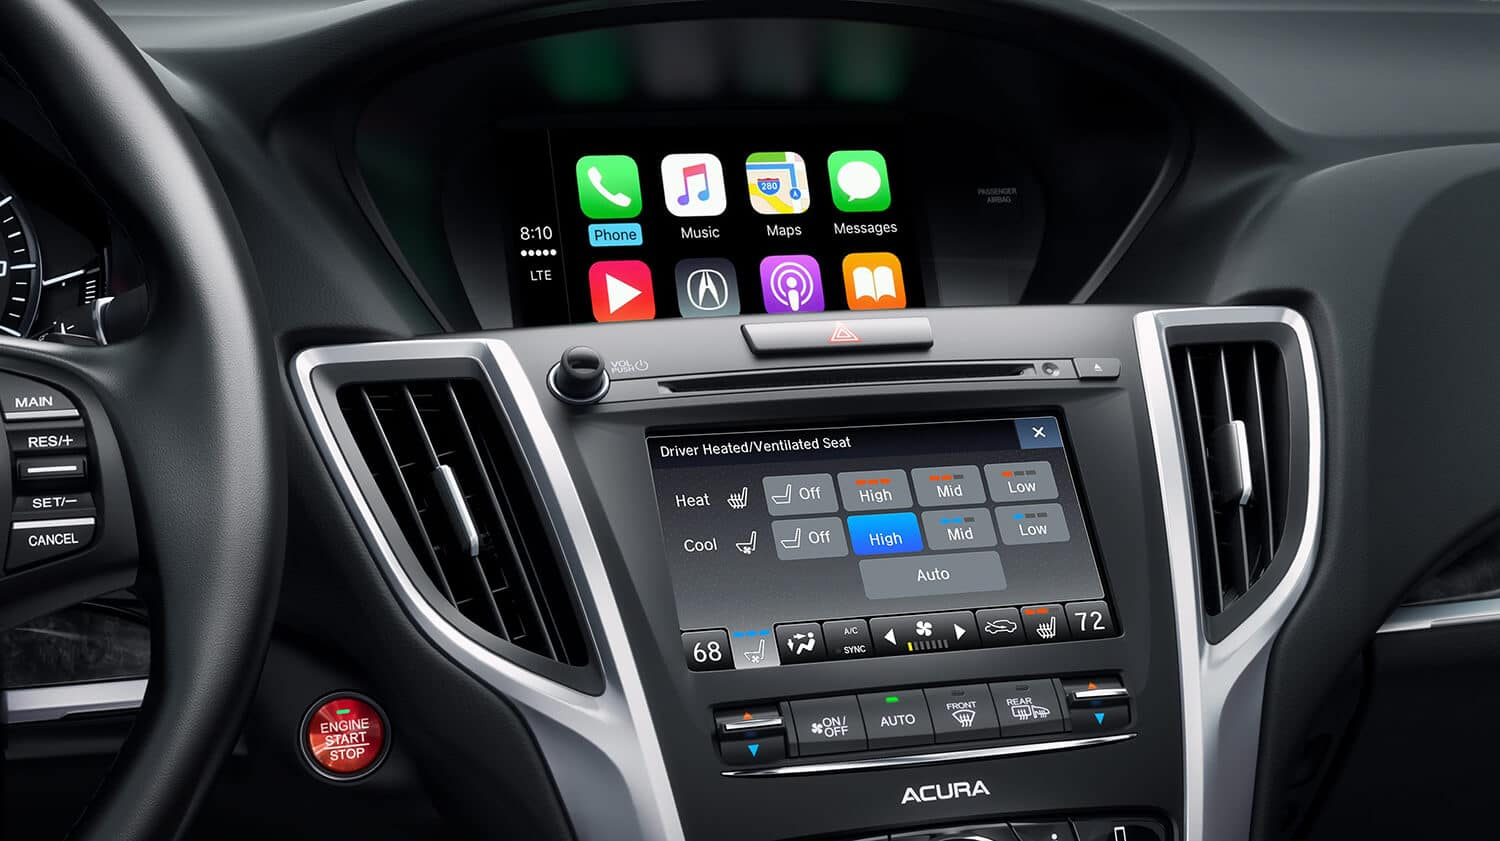 2019 Acura TLX Interior ODMD Apple CarPlay